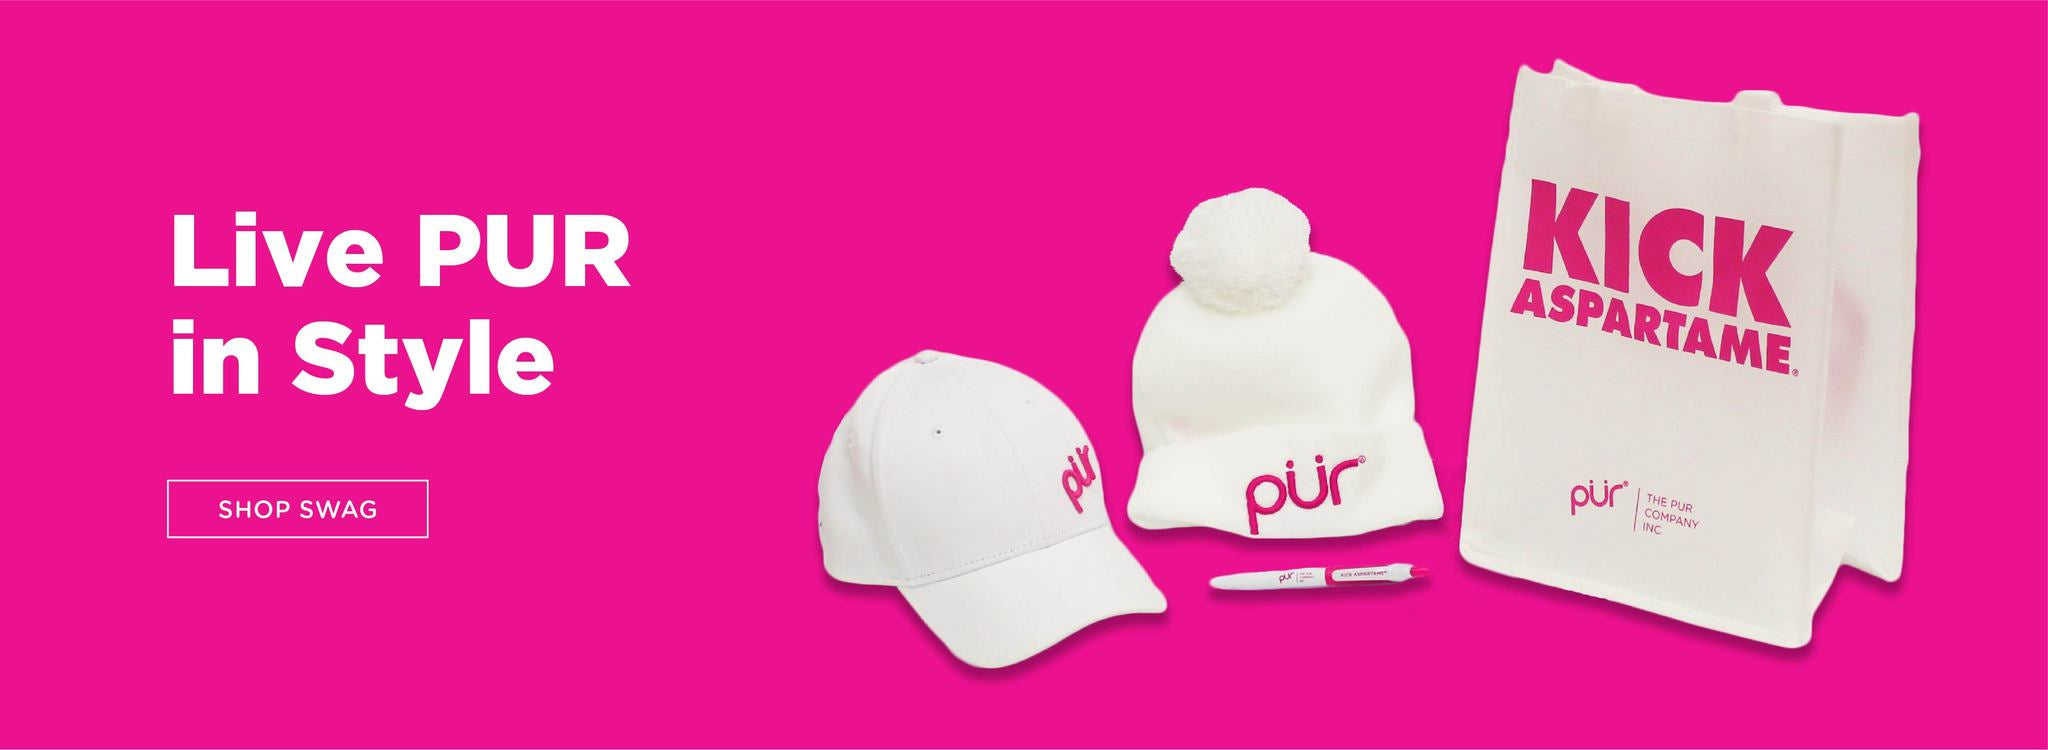 Live PUR in style with PUR SWAG